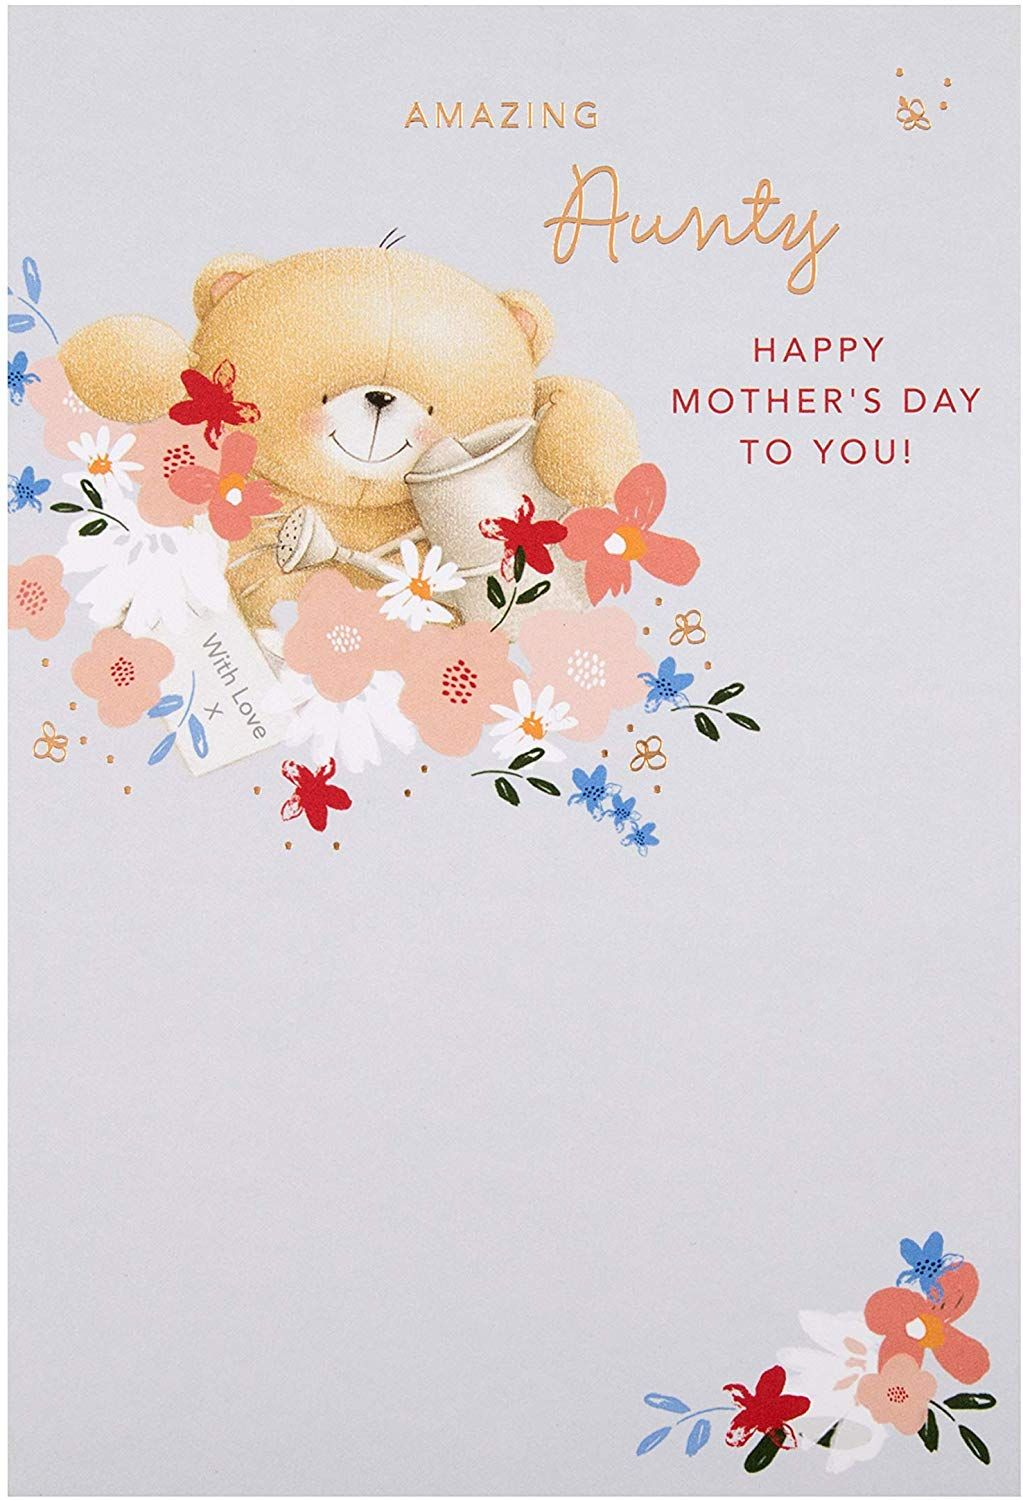 Mother S Day Card For Aunty From Hallmark Cute Forever Friends Design Amazon Co Uk Office Products In 2020 Forever Friends Cards Happy Mothers Day Cards